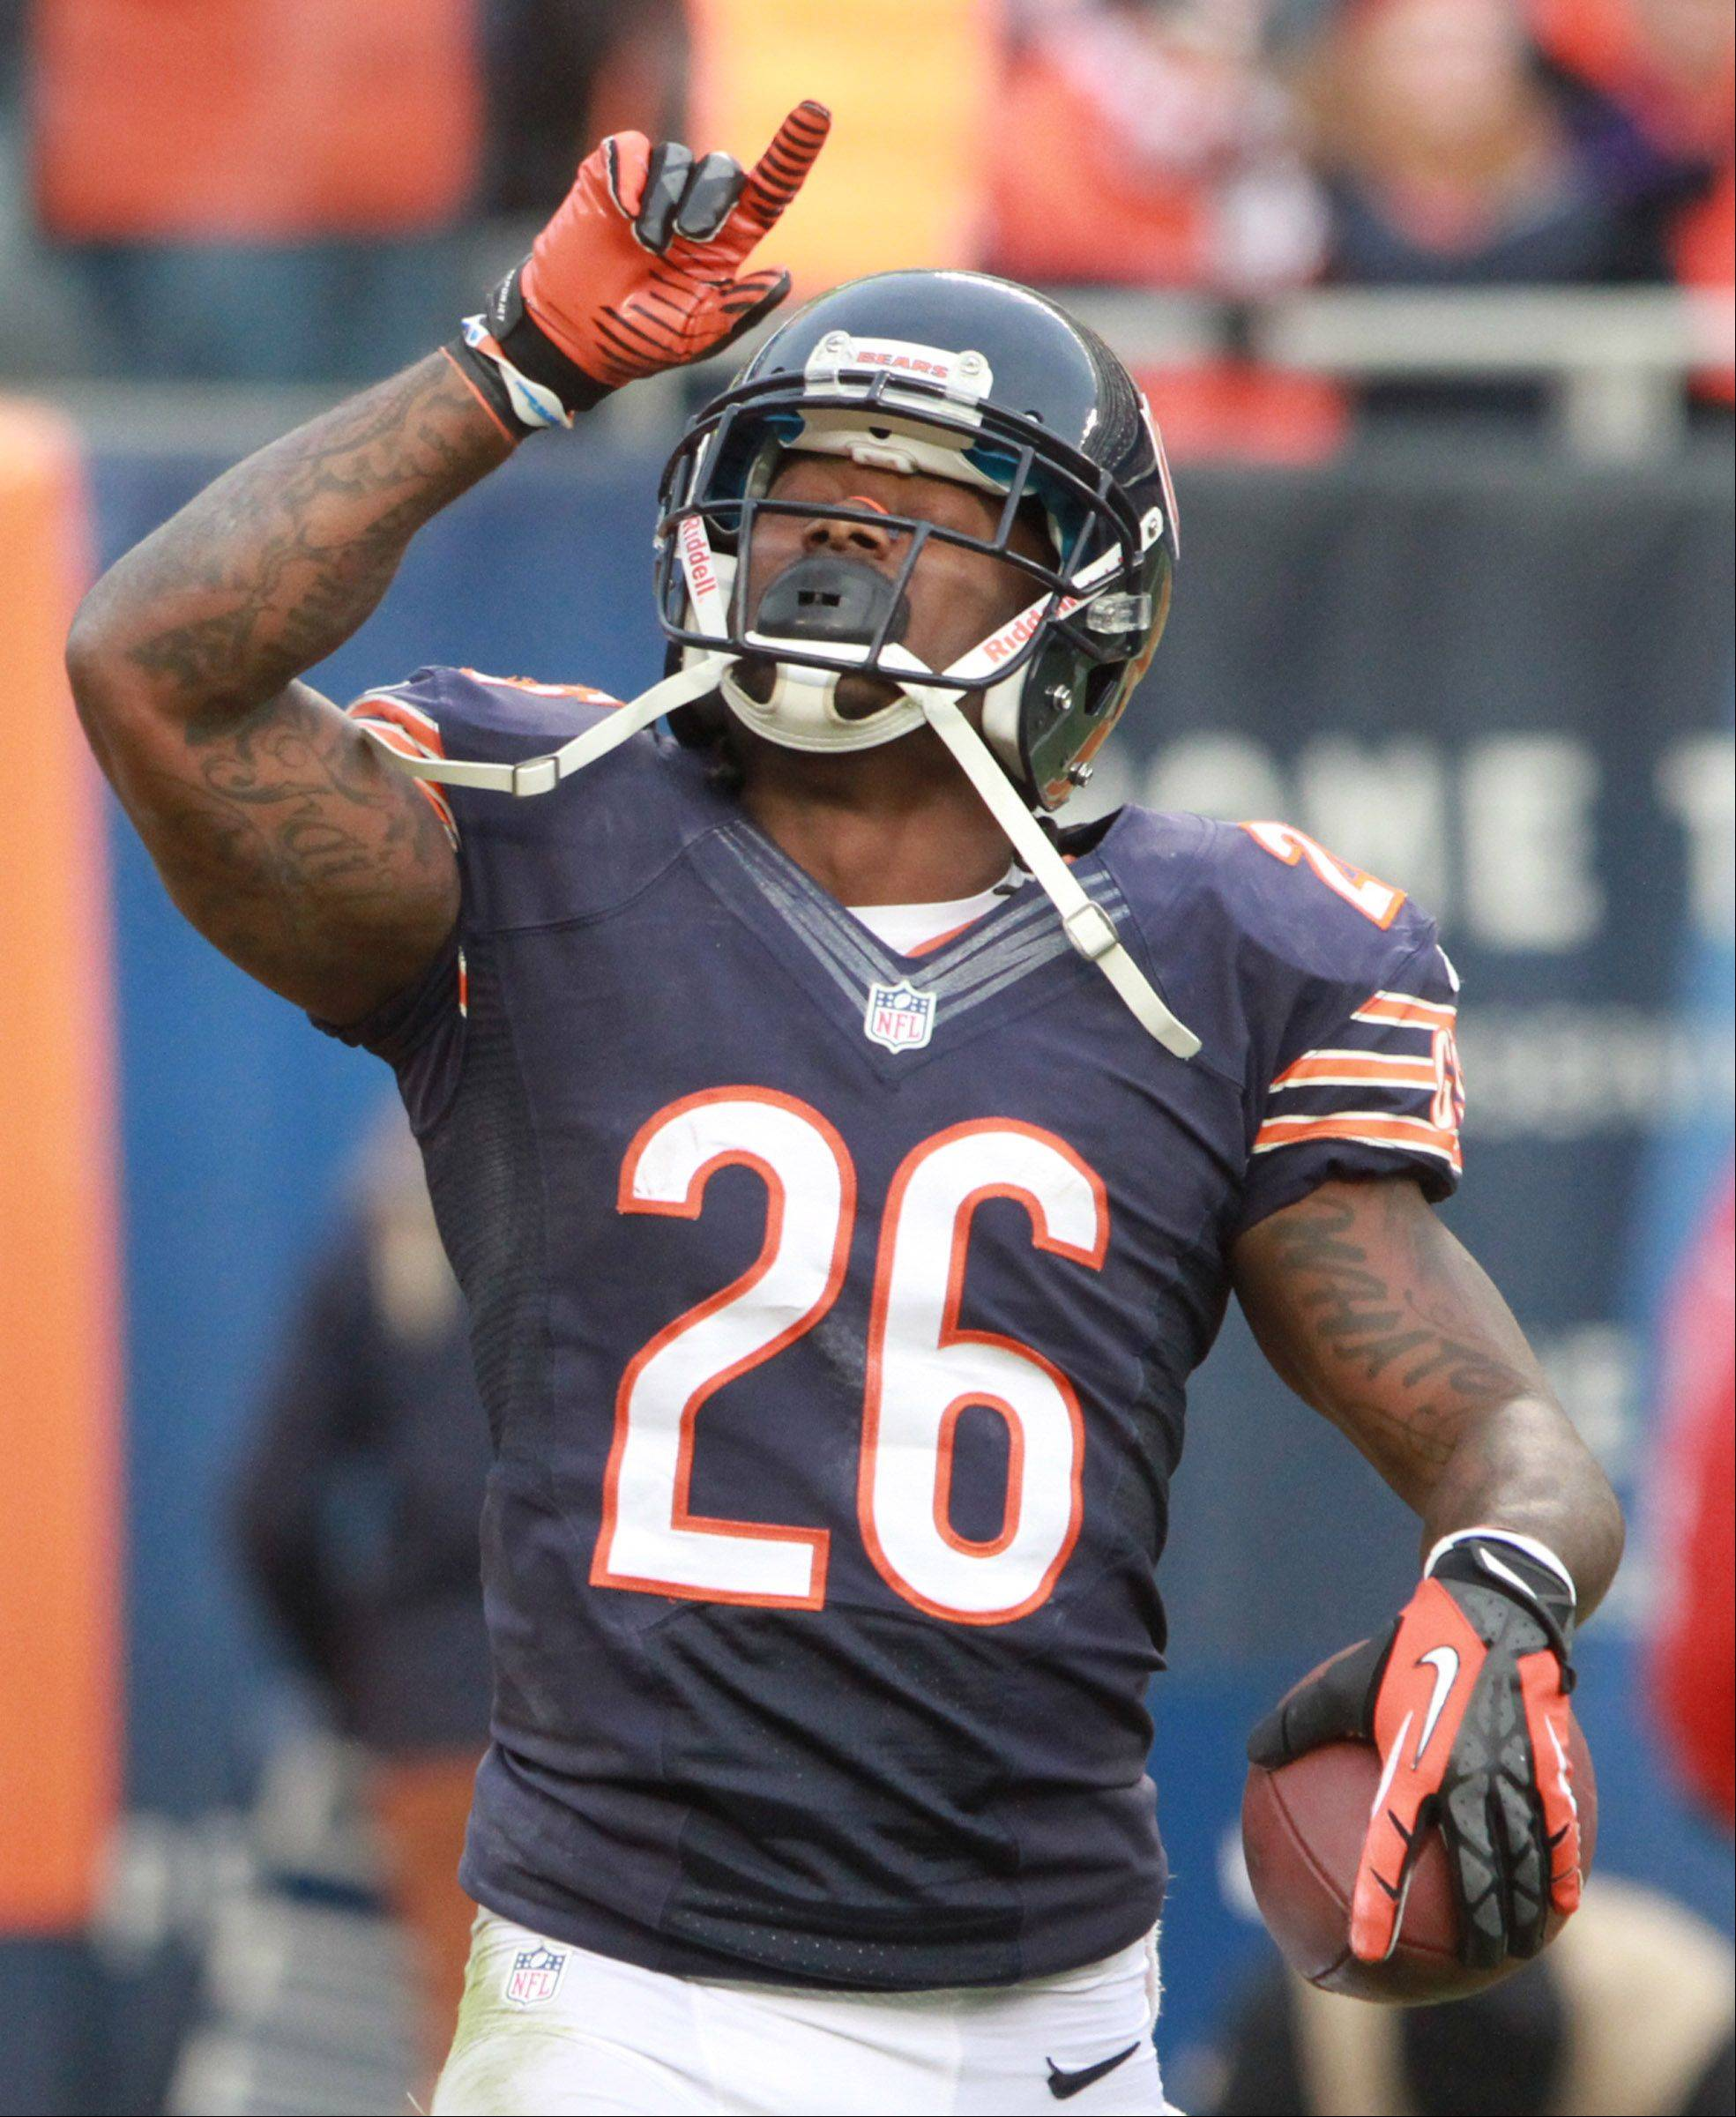 Bears cornerback Tim Jennings was named to his first Pro Bowl team Wednesday